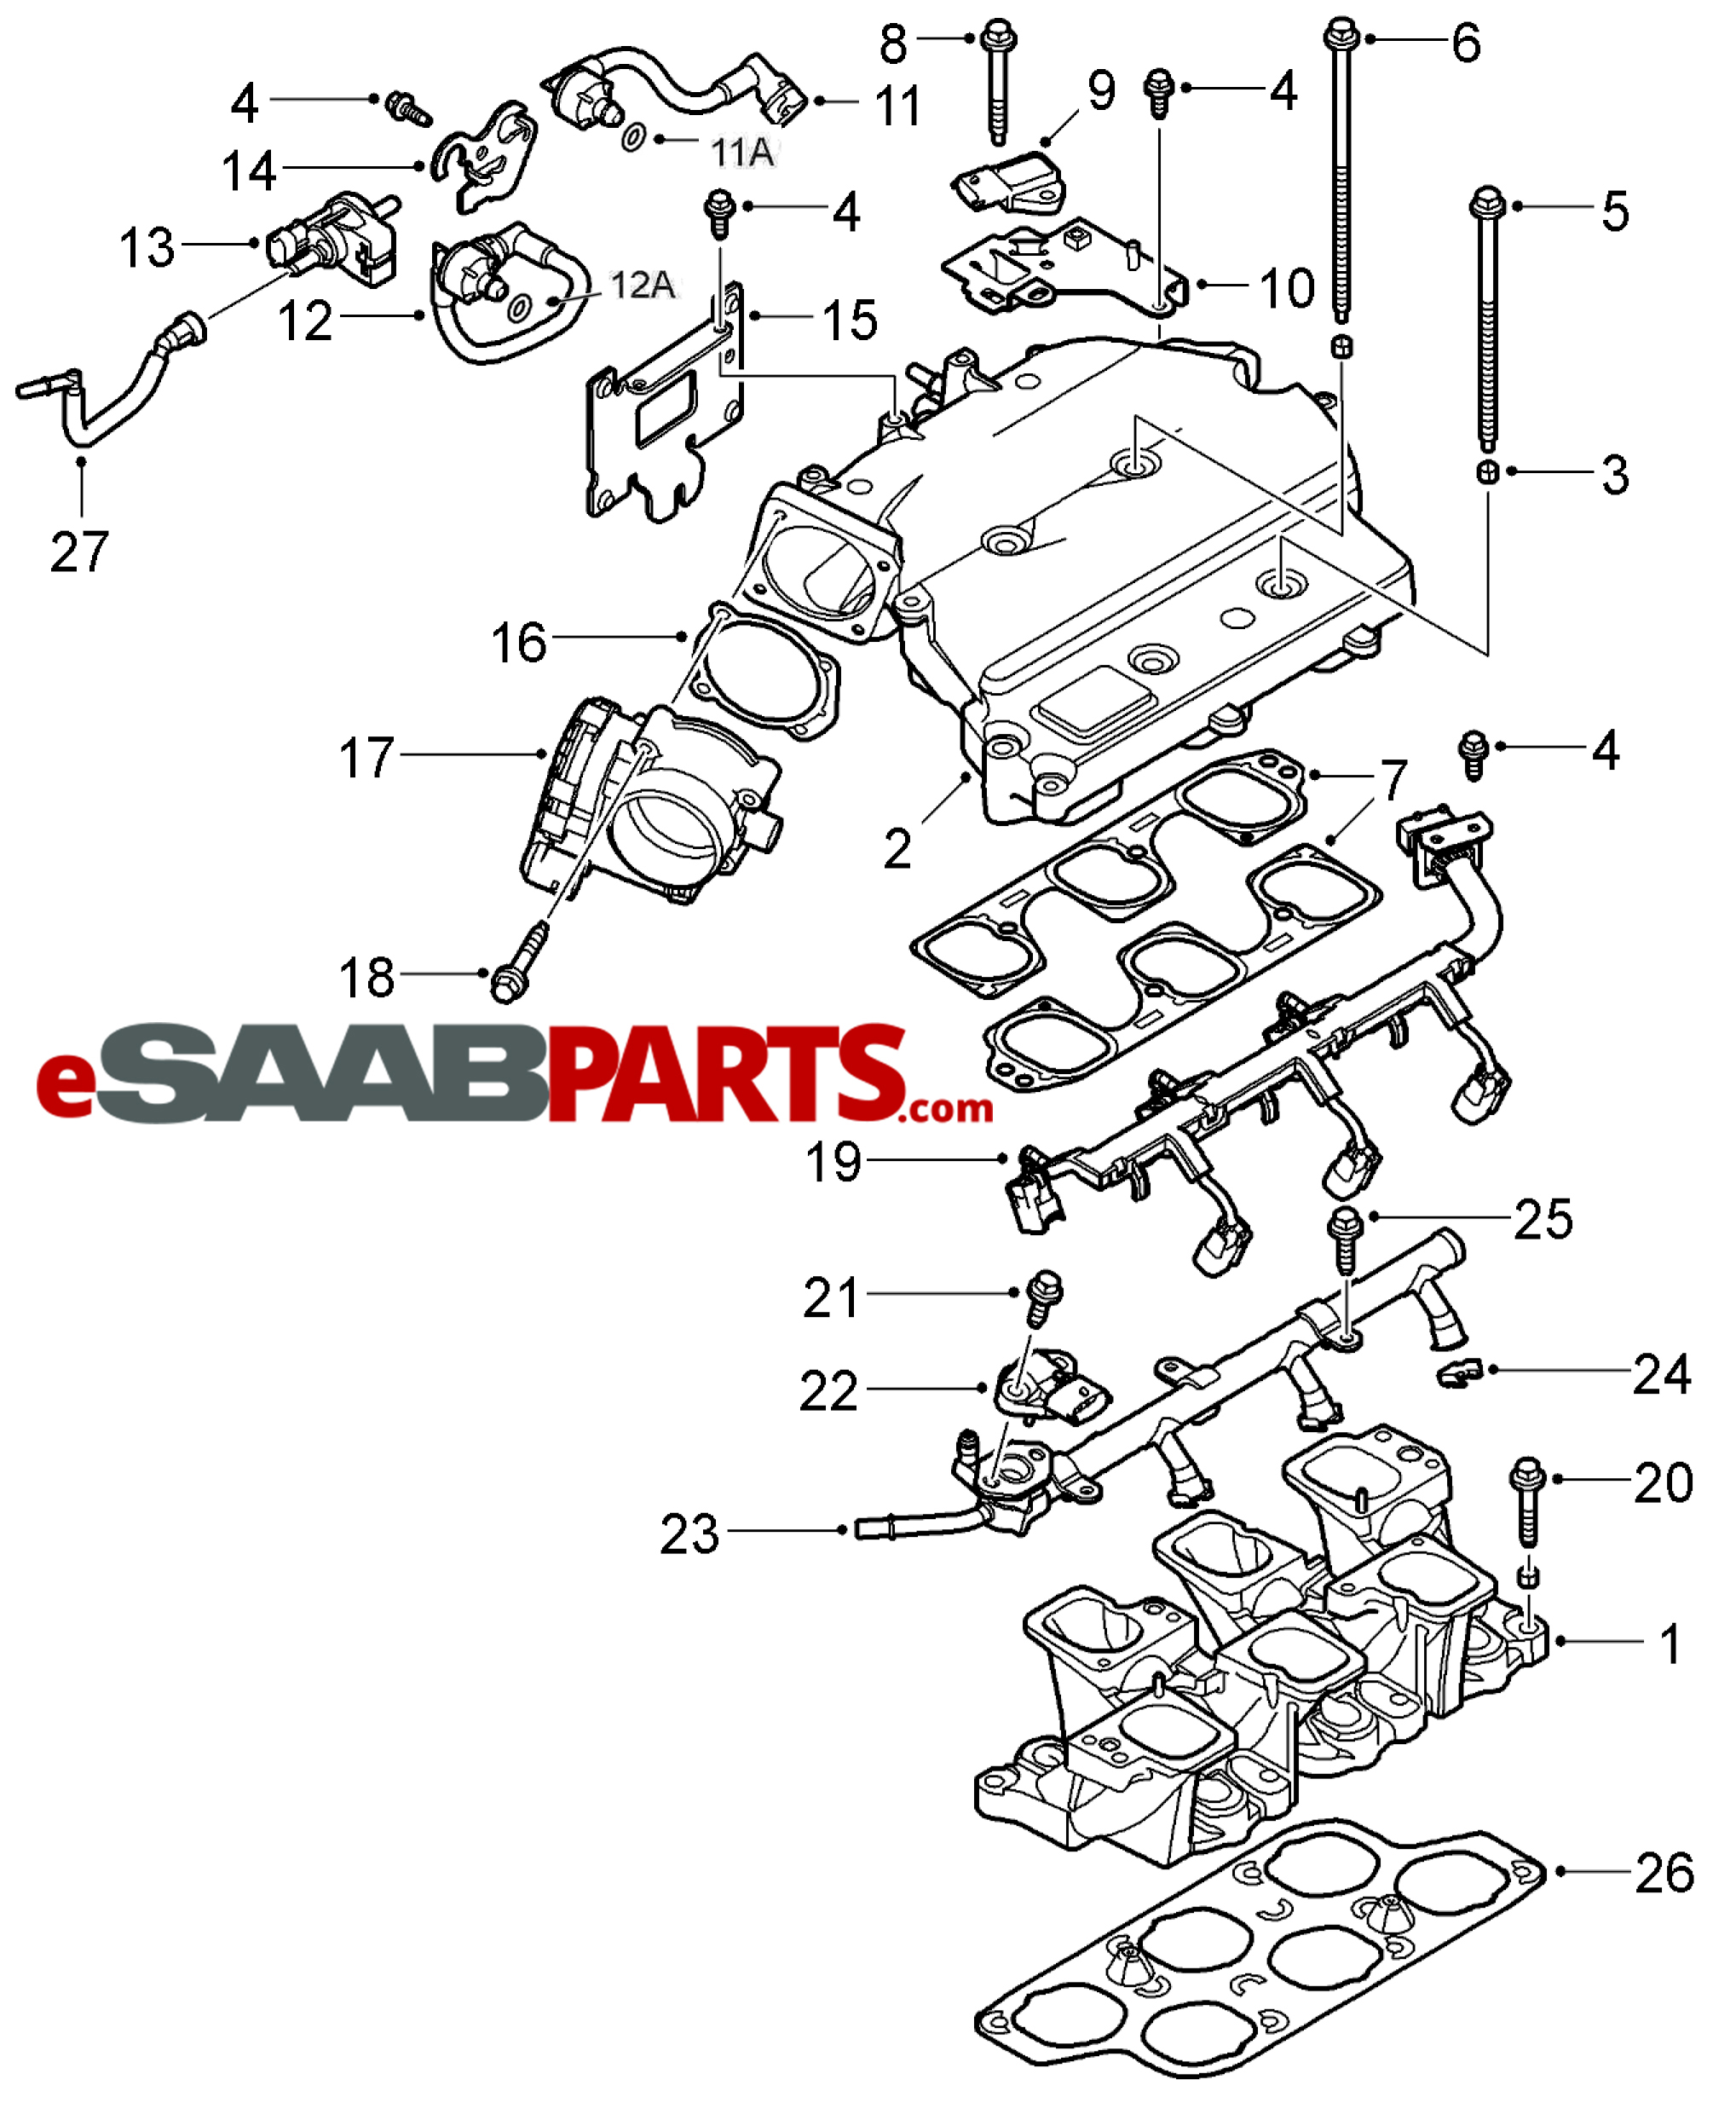 Gmc Envoy Body Parts Diagram Wiring Will Be A Thing 2004 Saab Clutch Engine And Yukon 2007 Sierra